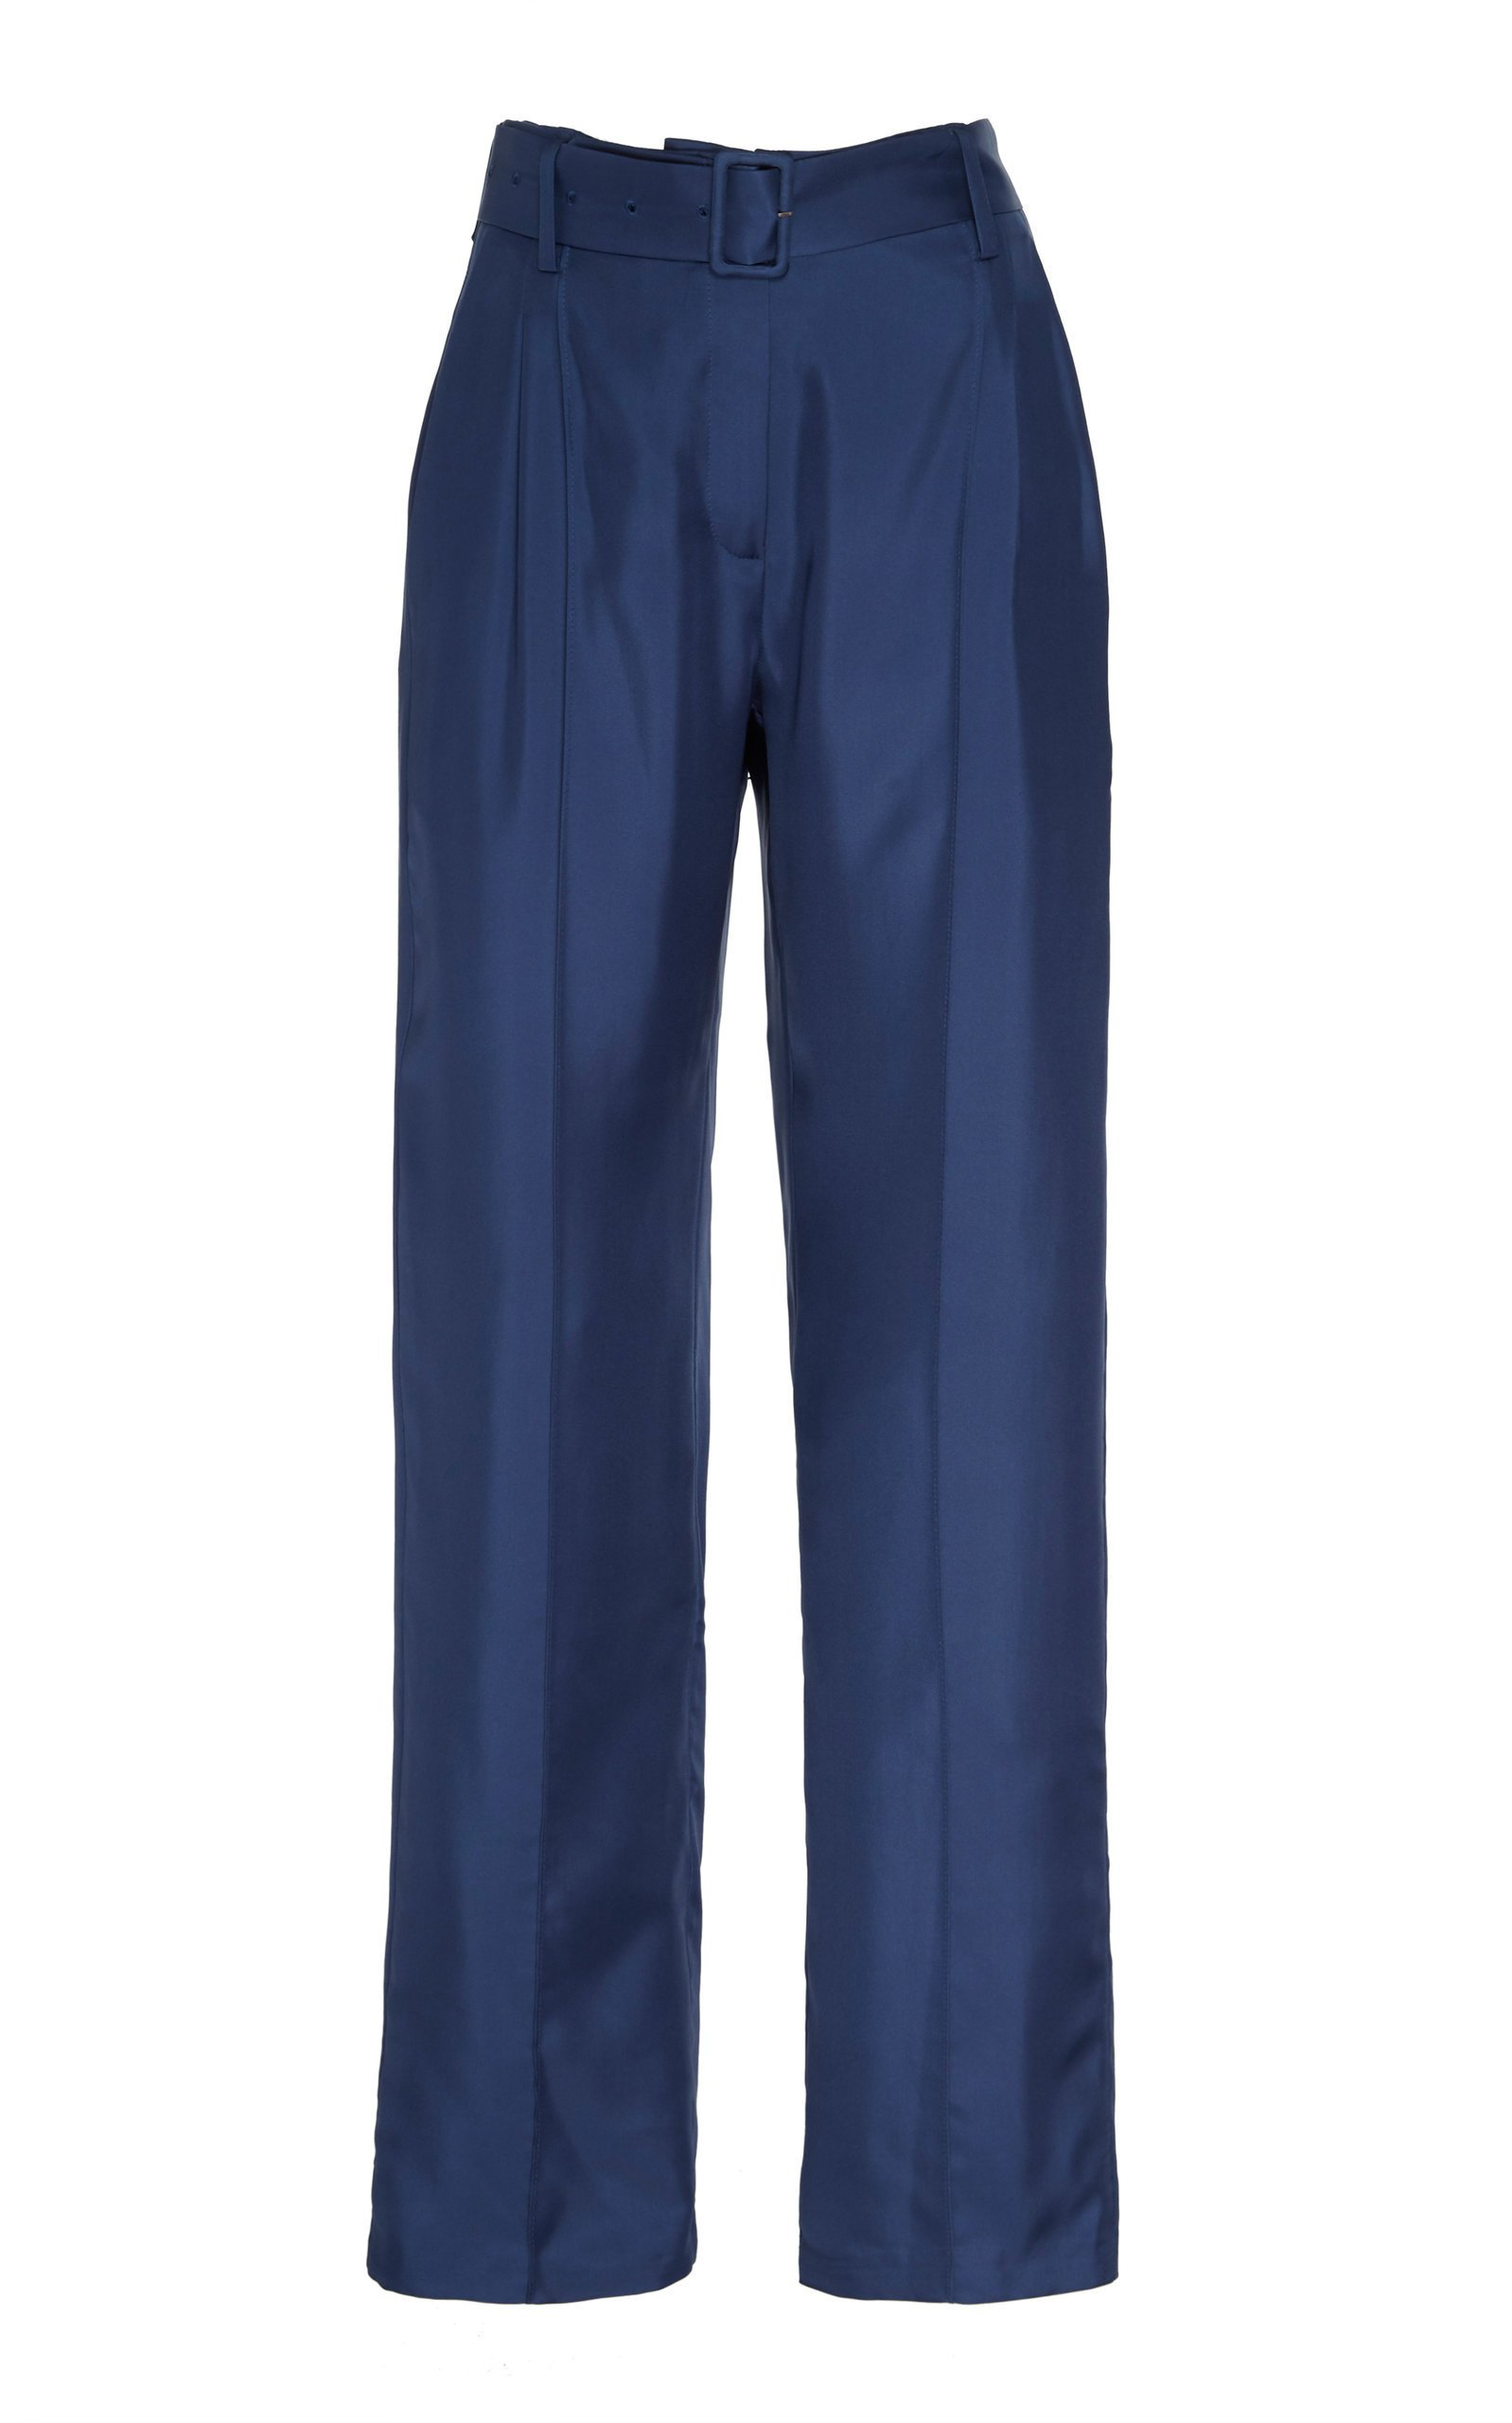 Sally LaPointe Silky Twill Pintuck Belted Pant